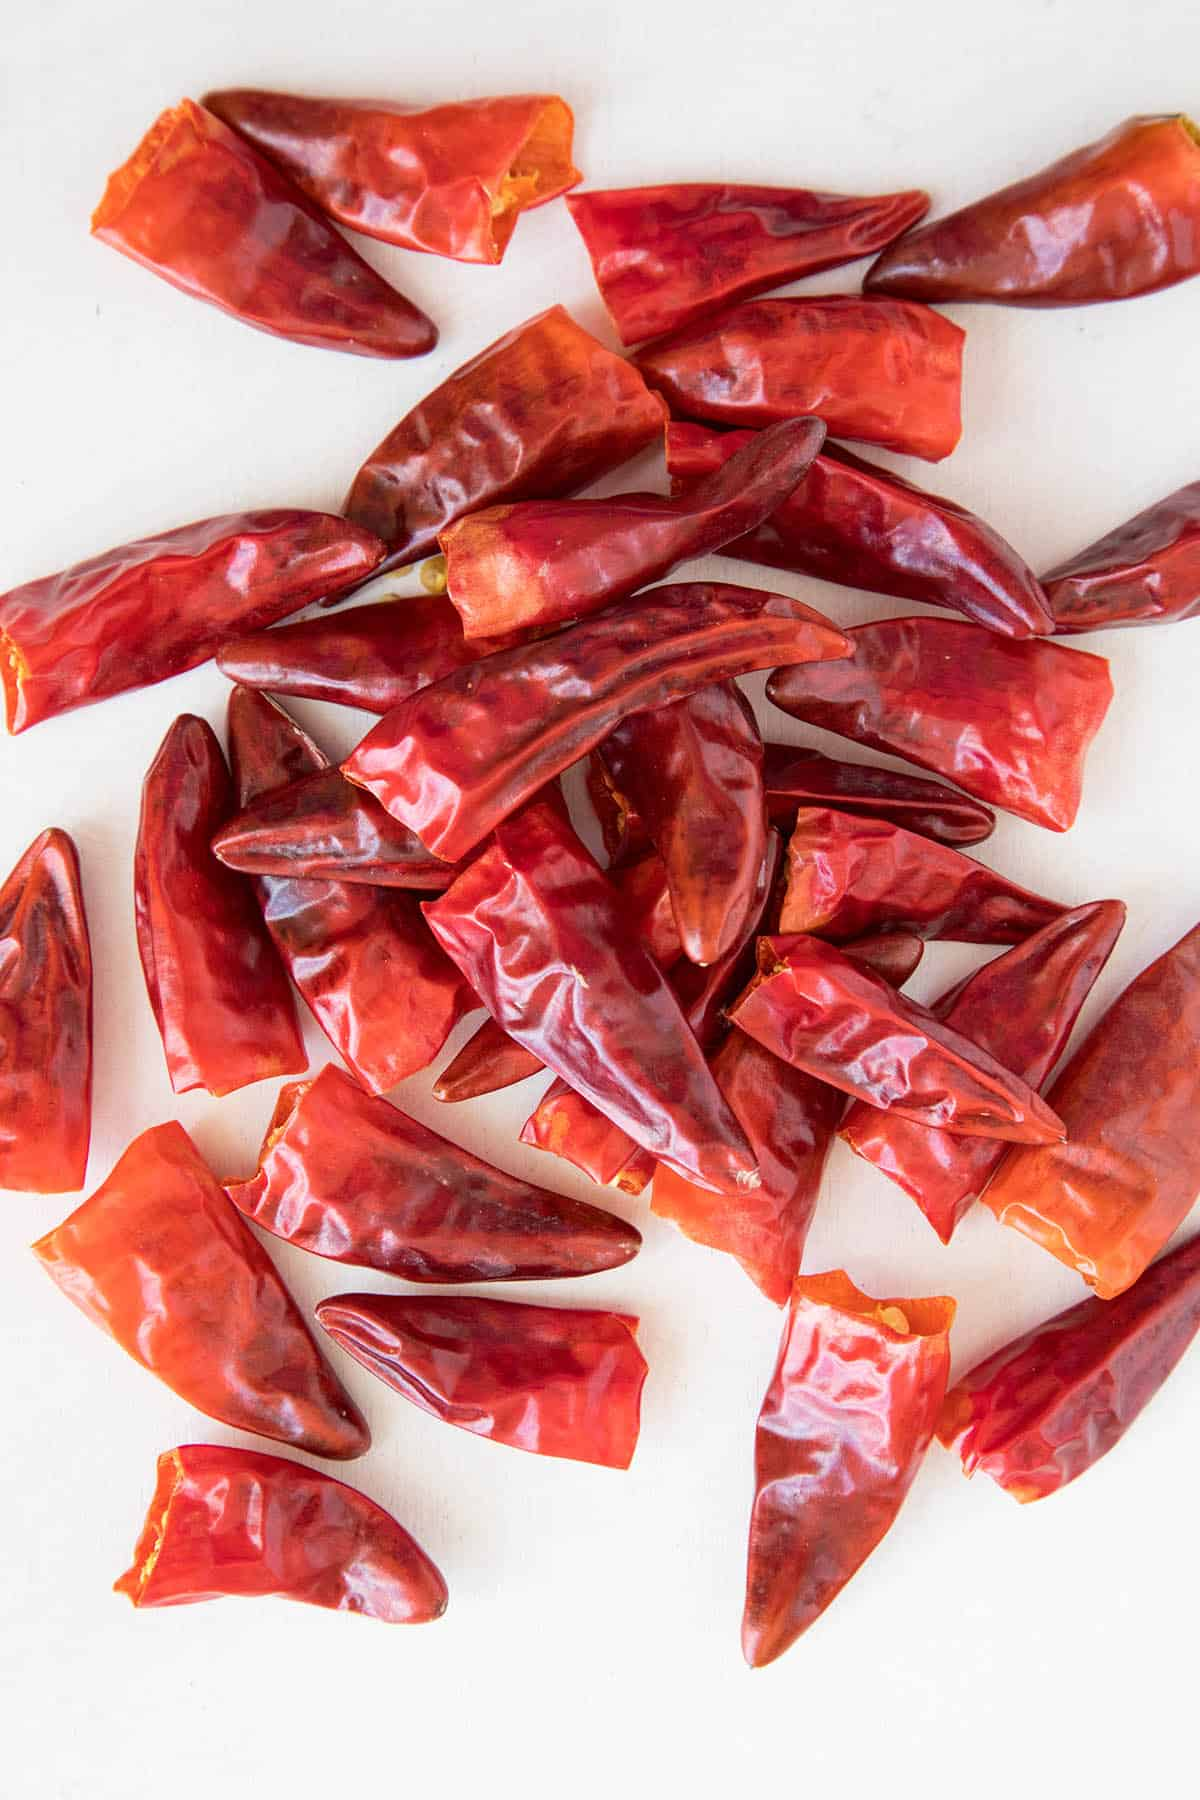 Hawaiian Sweet Hot Chili Peppers